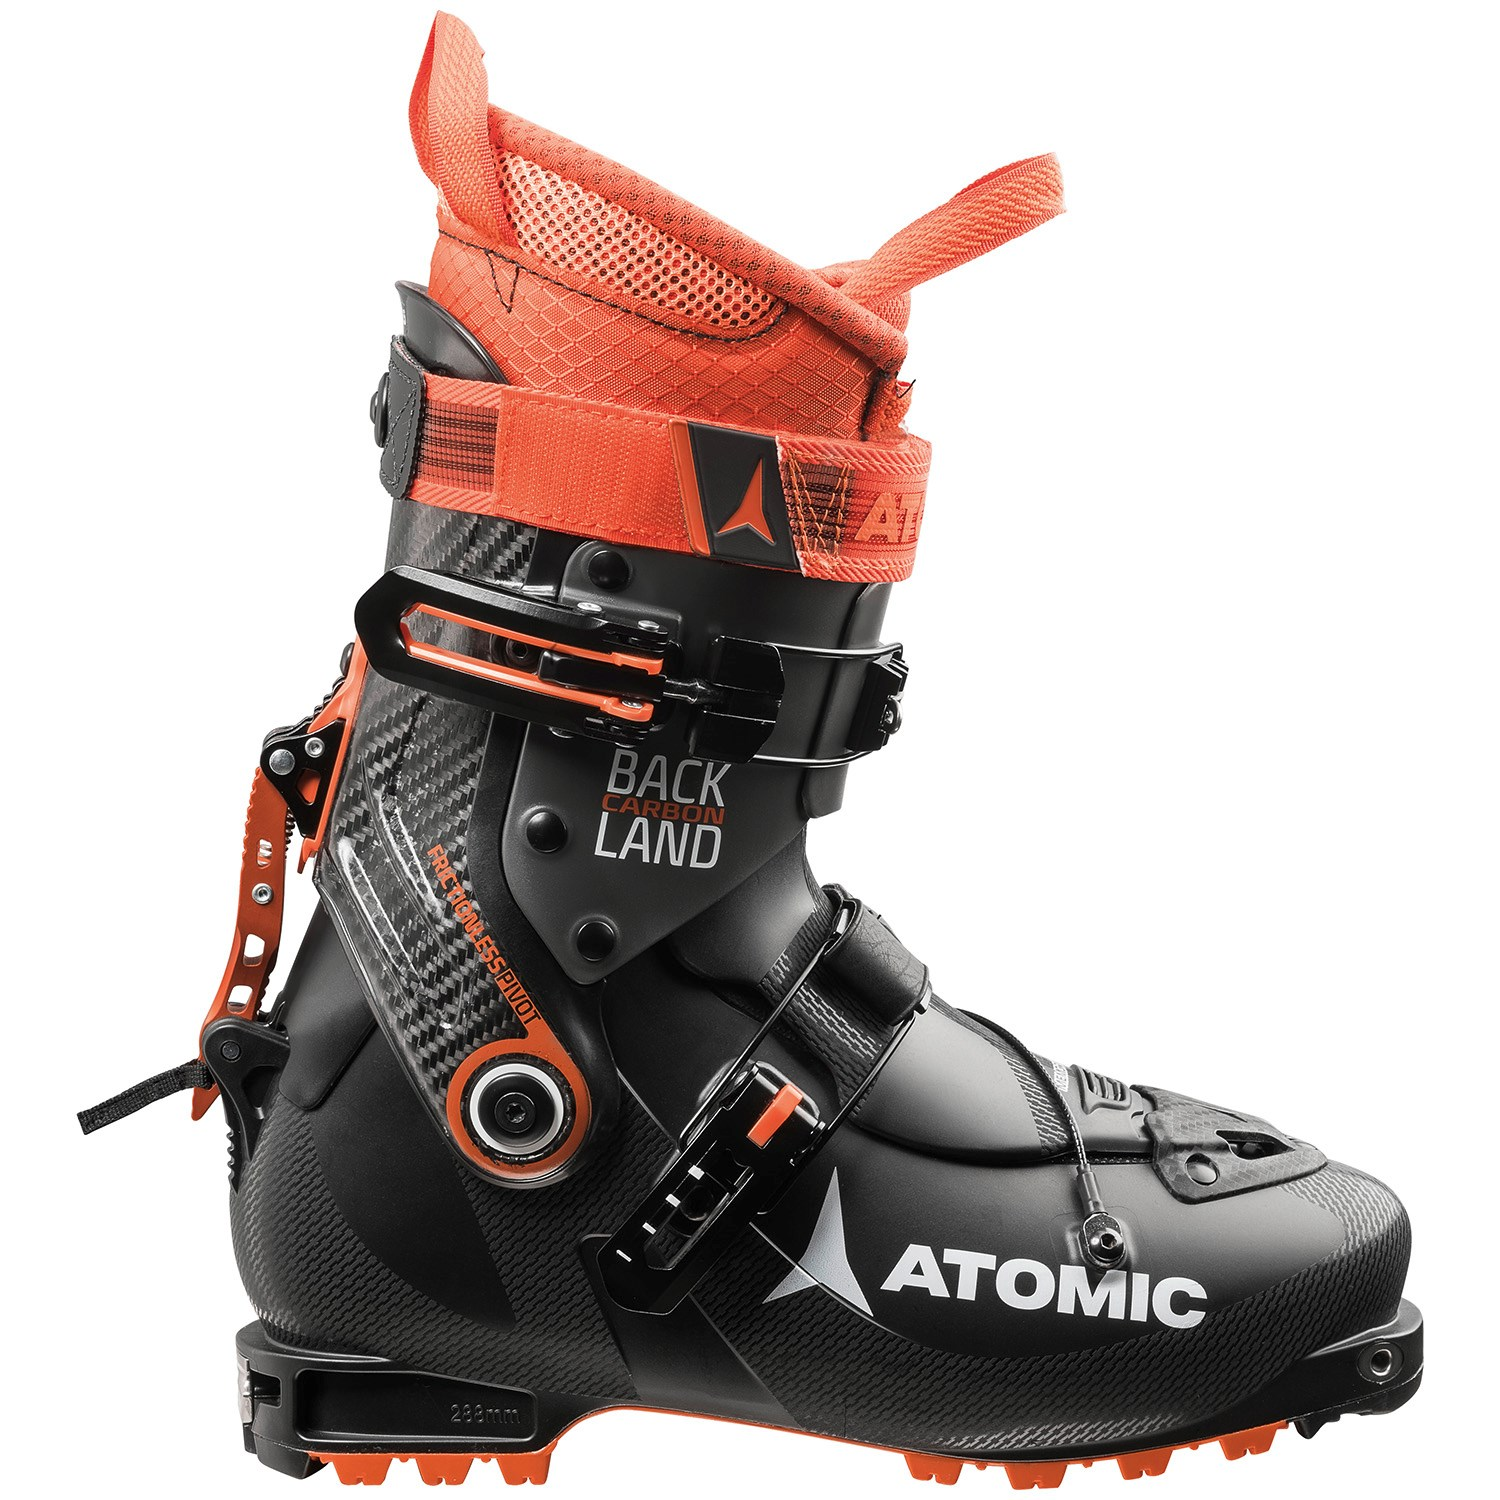 Atomic Backland Carbon Alpine Touring Ski Boots 2018